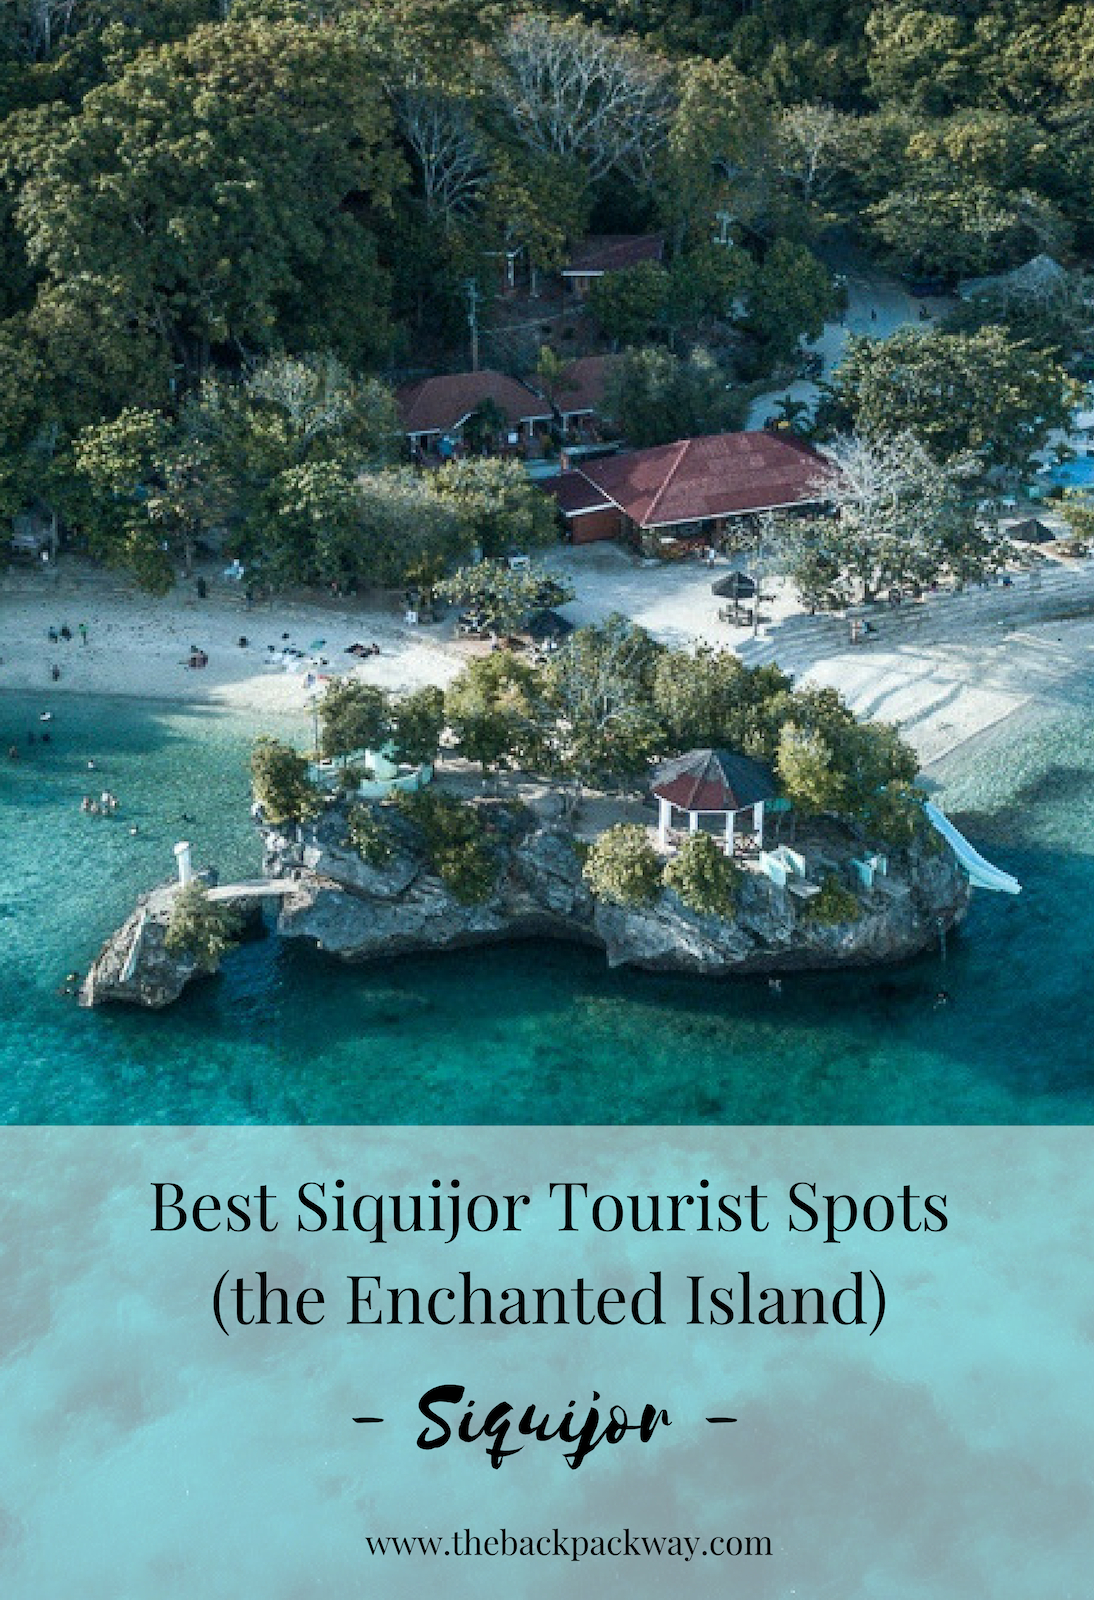 best siquijor tourist spots